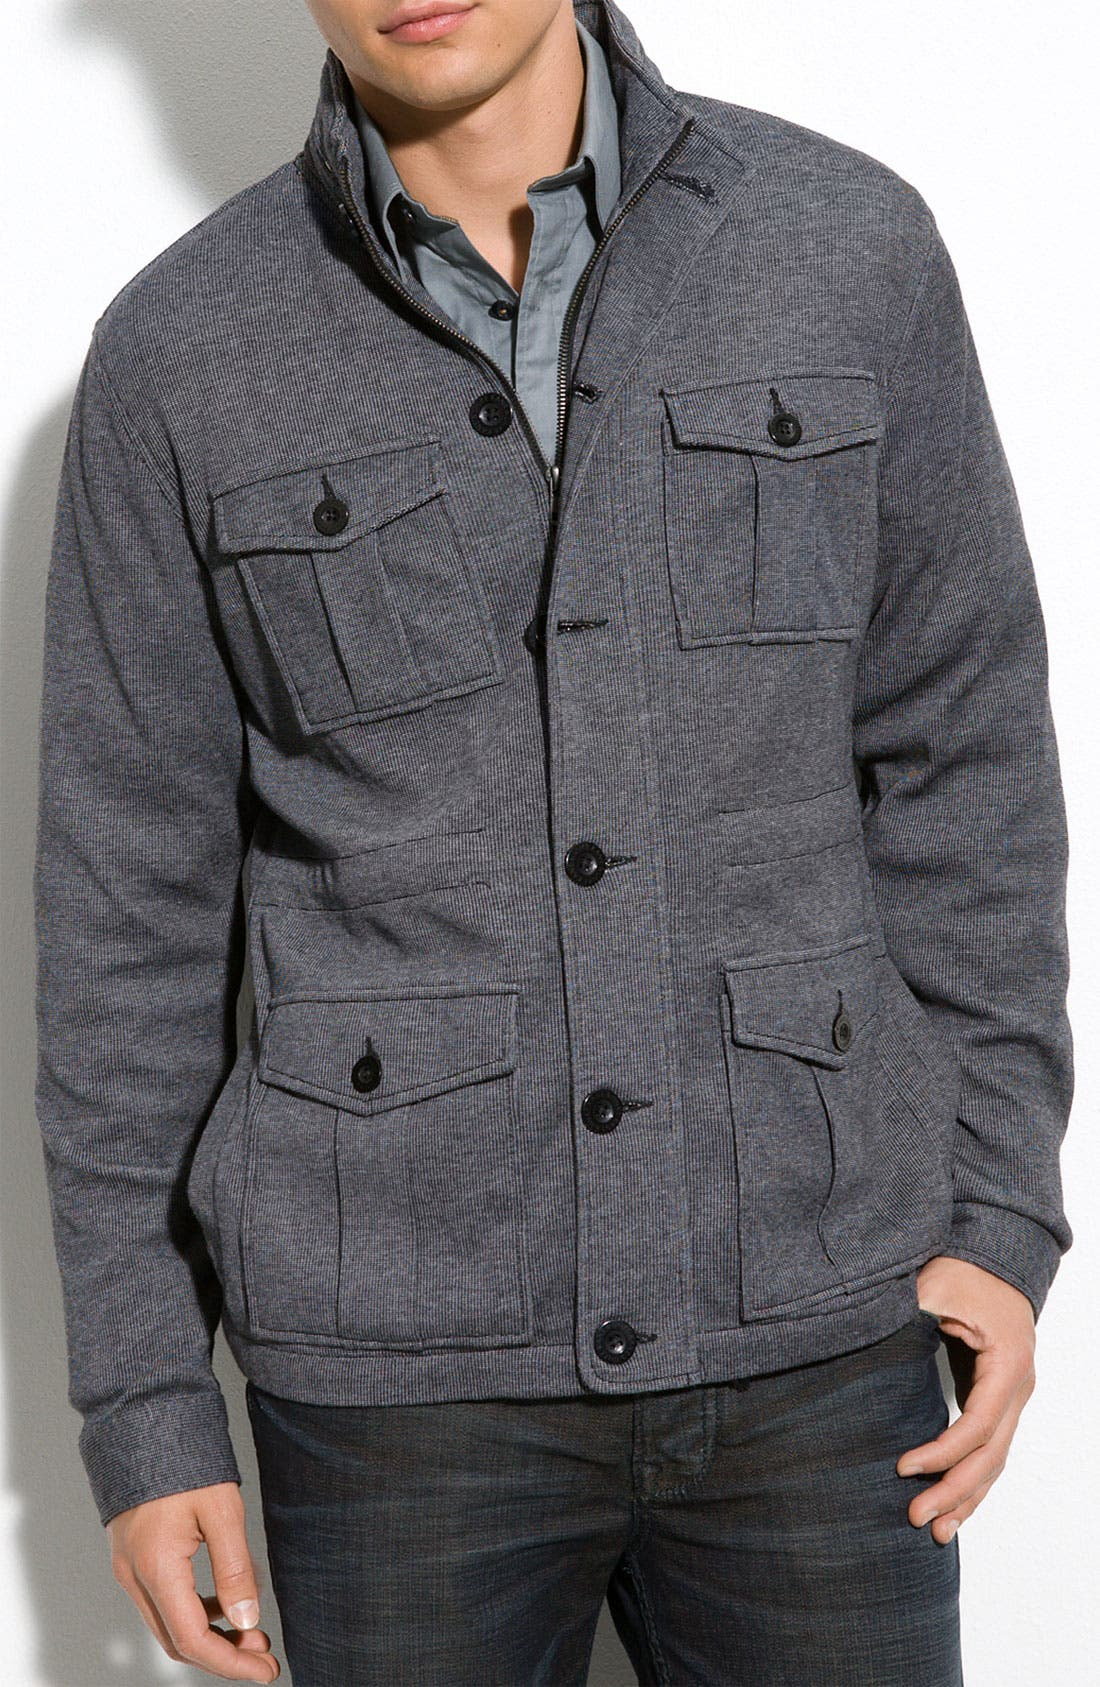 Alternate Image 1 Selected - Kane & Unke Trim Fit Field Jacket